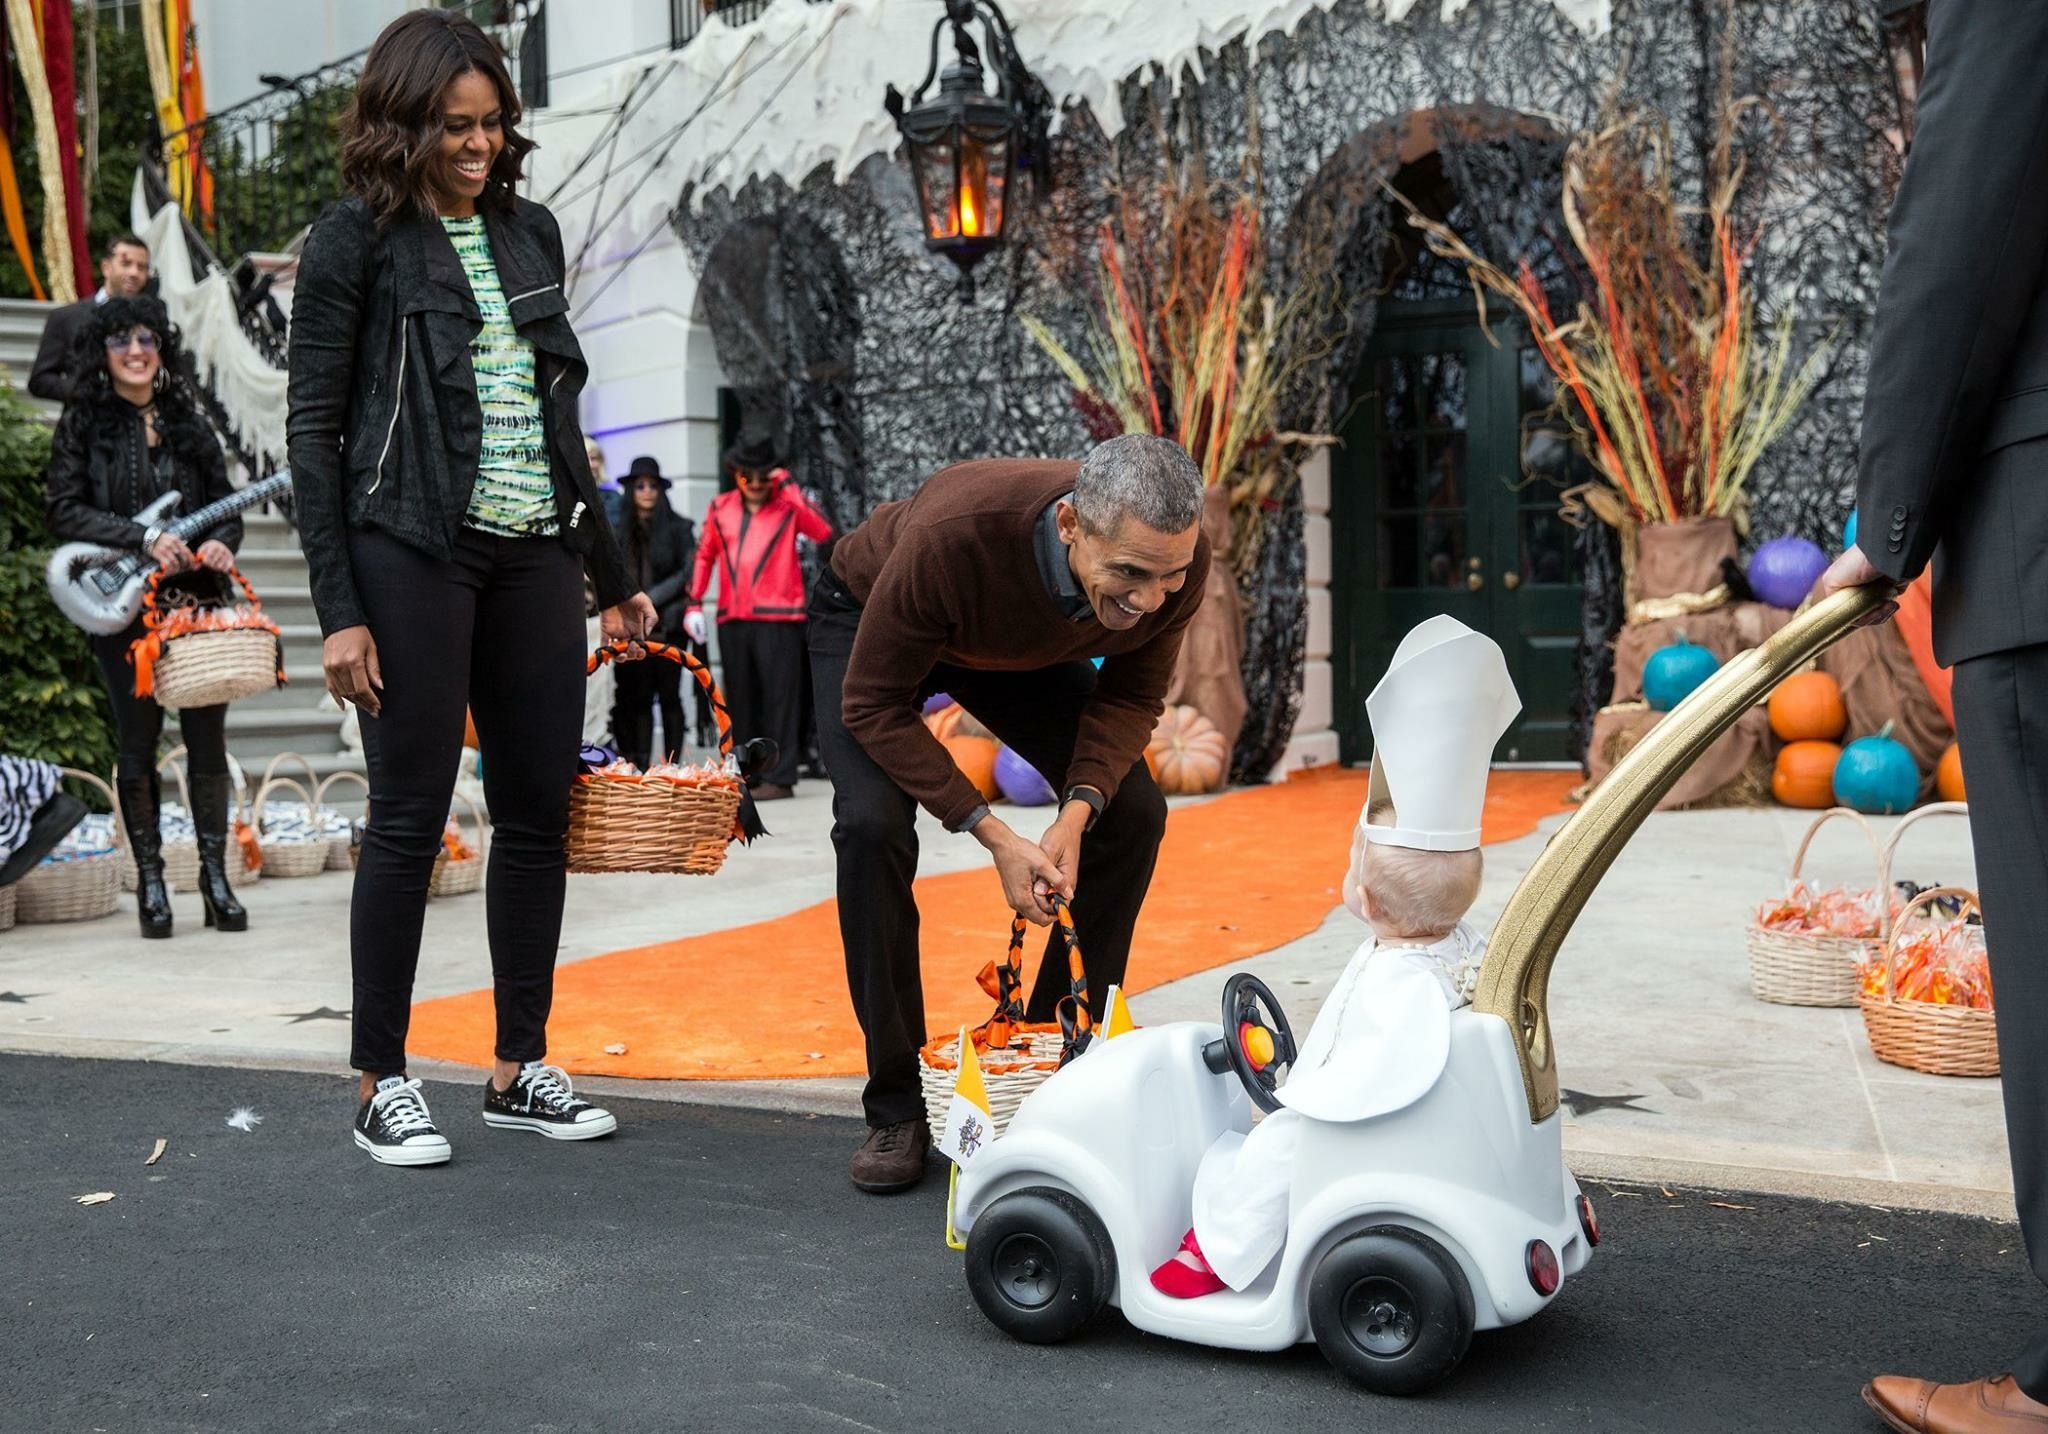 obamas and baby pope at white house halloween. | loveitsomuch in